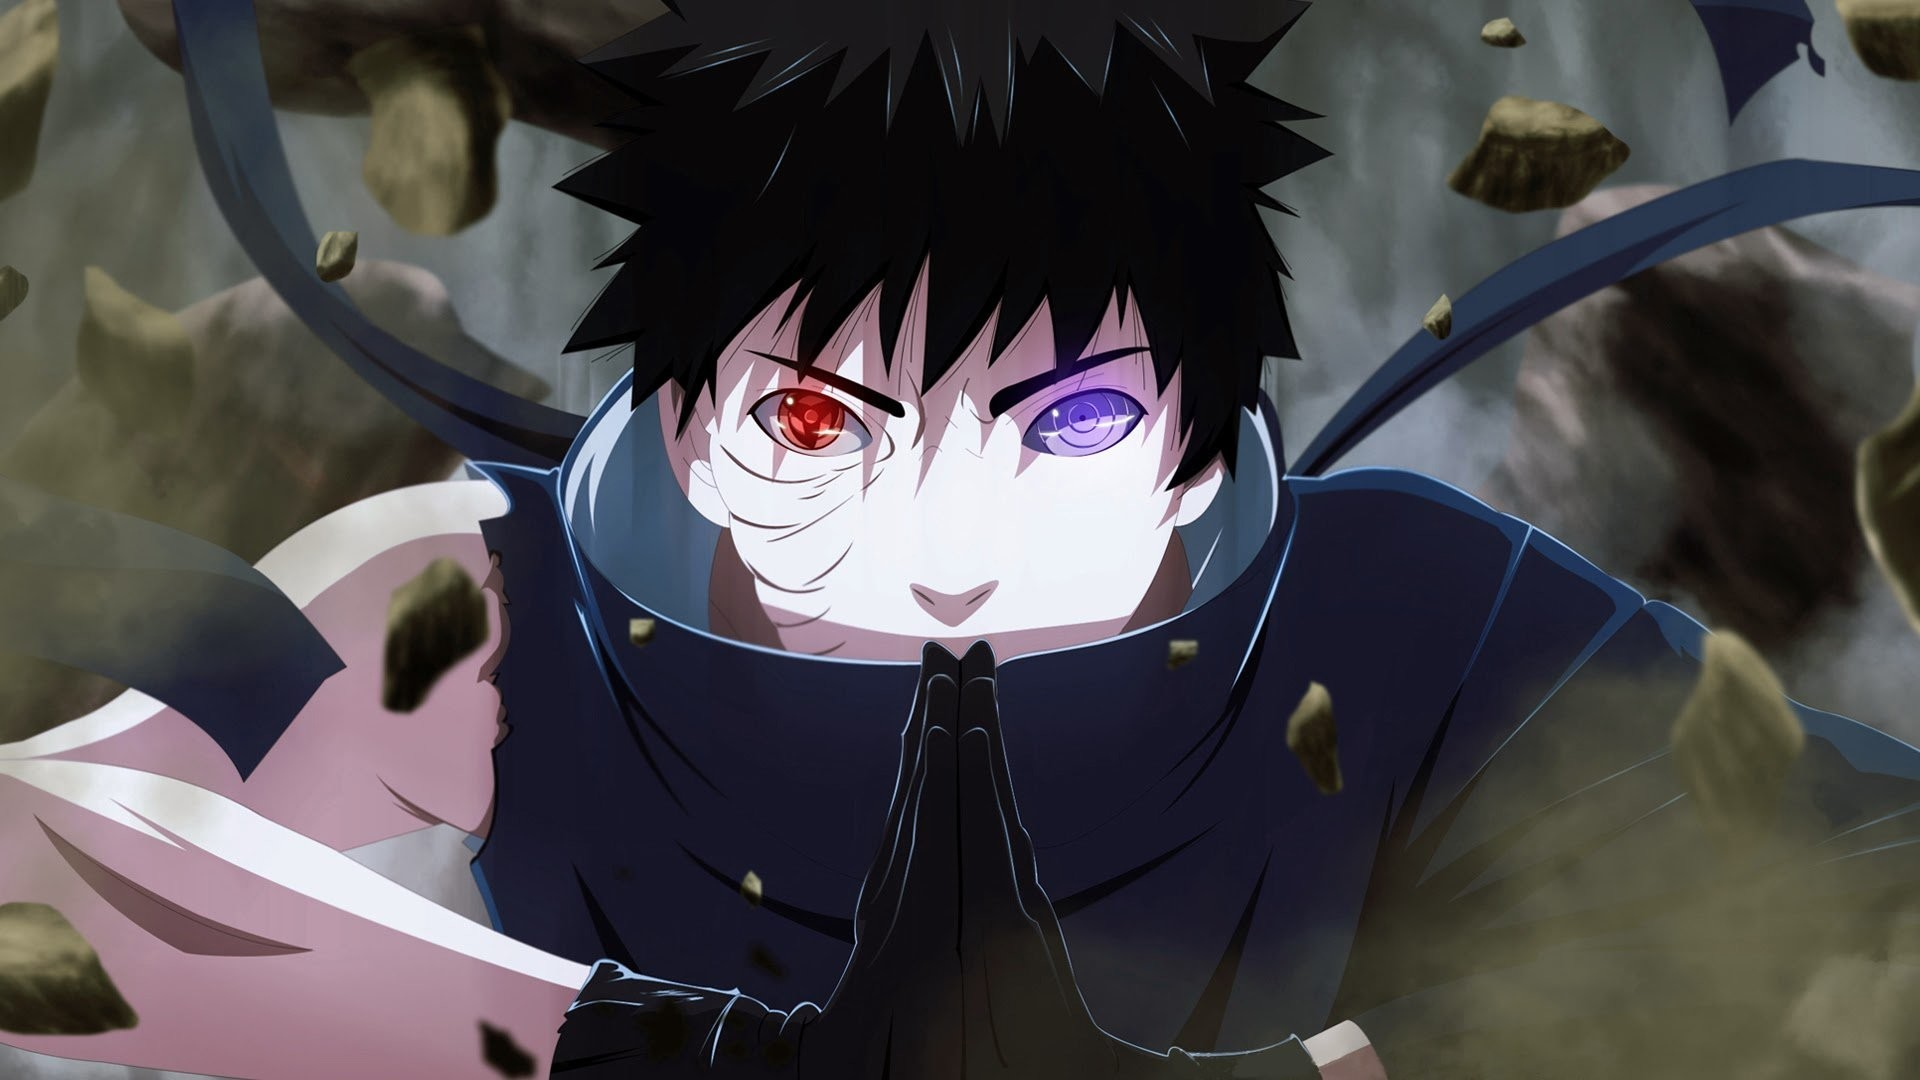 1920x1080 Wallpapers For Sasuke Uchiha Mangekyou Sharingan Wallpaper